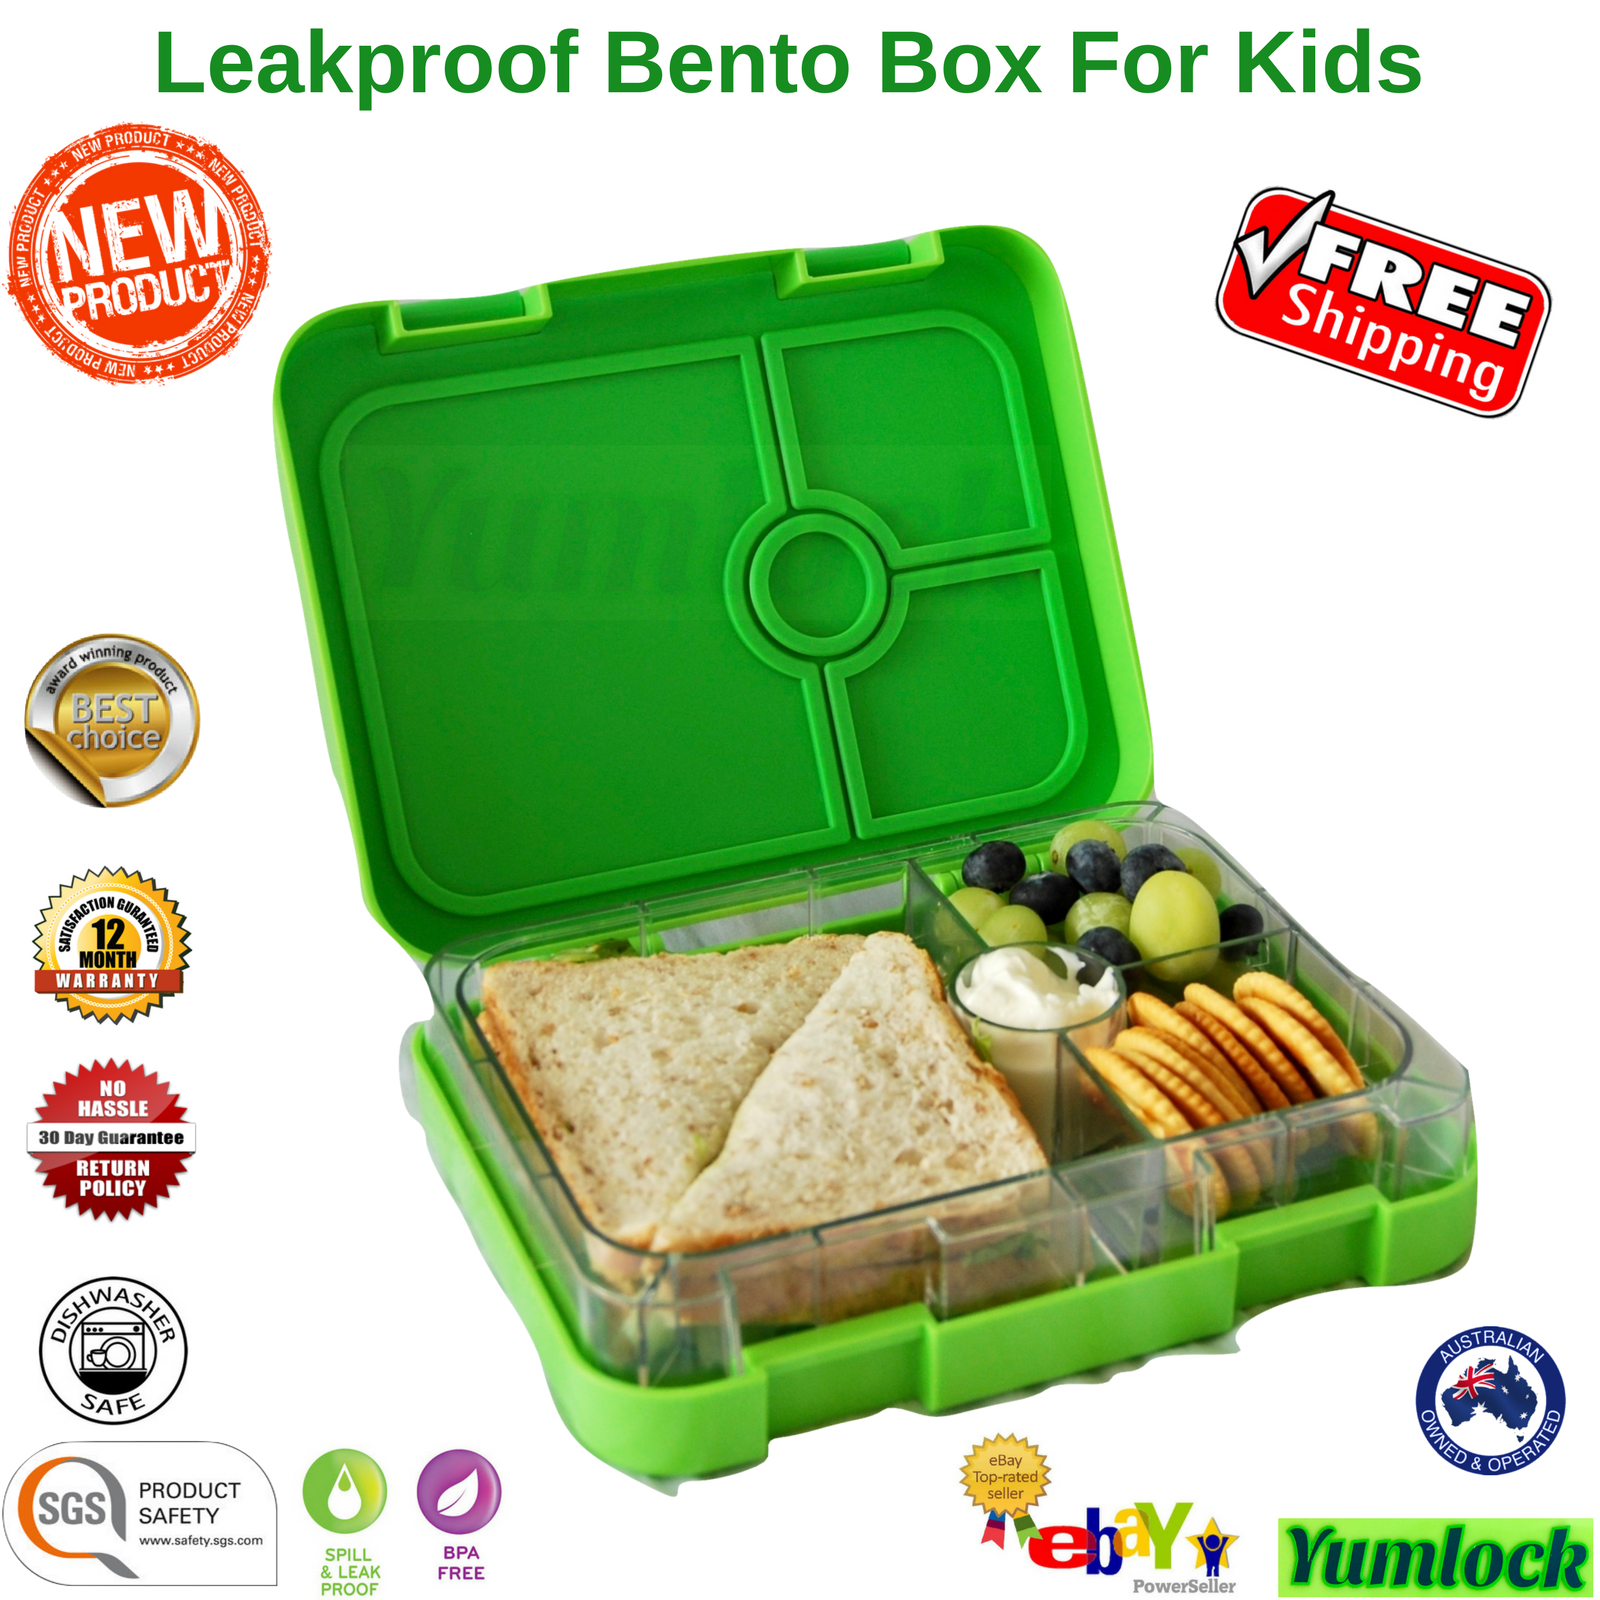 bento lunch box food container school picnic 4 leakproof. Black Bedroom Furniture Sets. Home Design Ideas